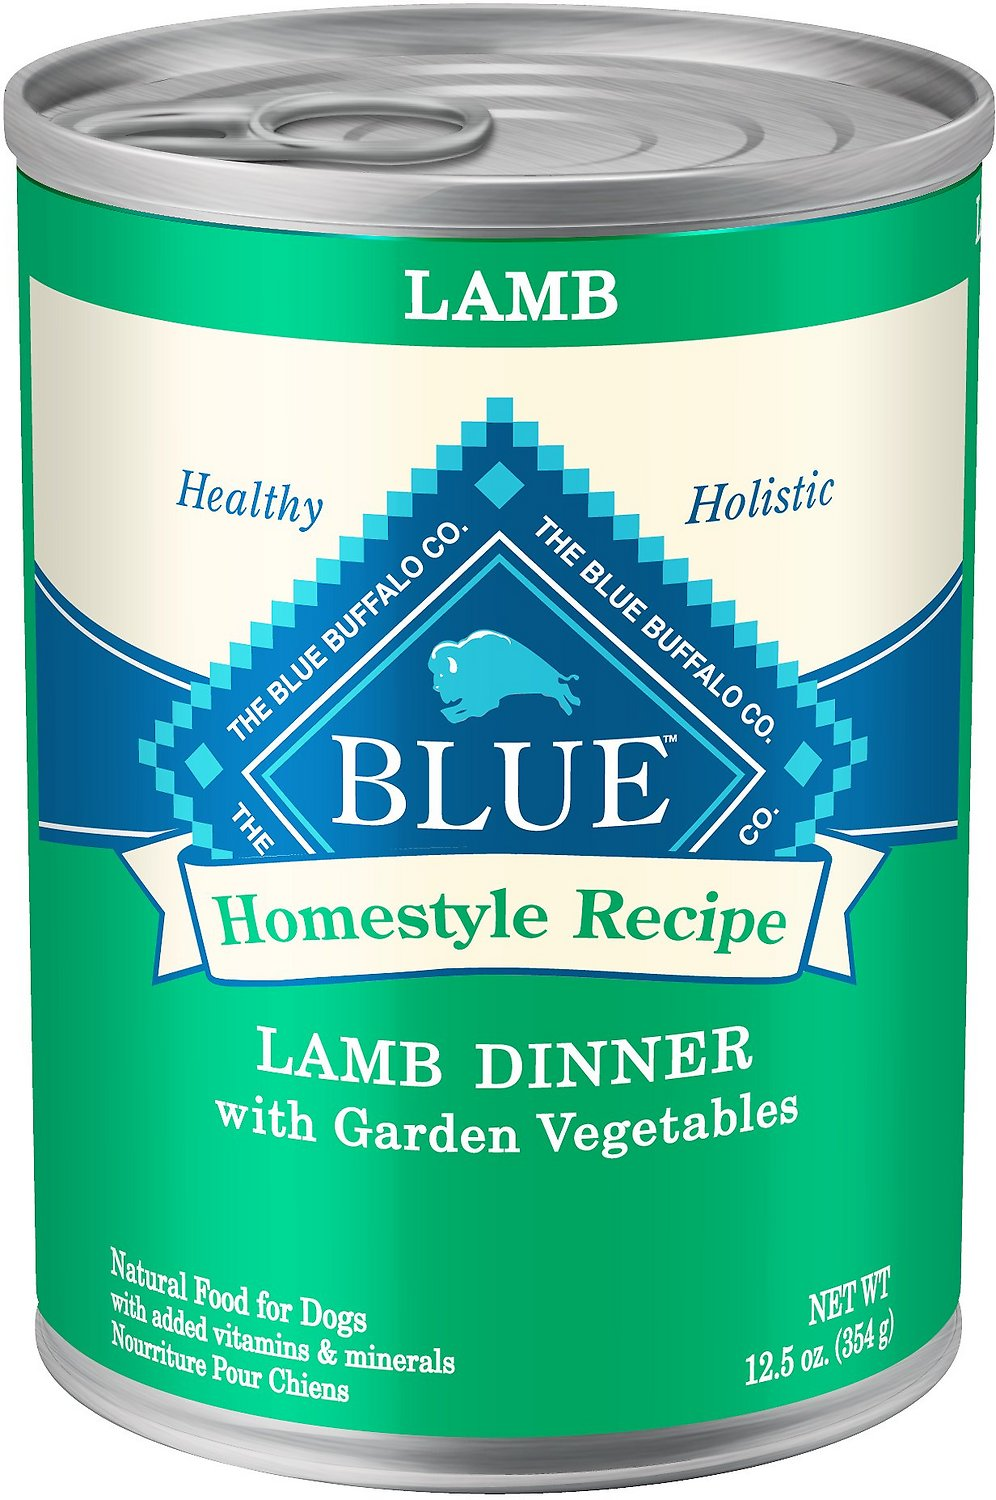 Blue Buffalo Homestyle Recipe Lamb Dinner with Garden Vegetables Canned Dog Food Image